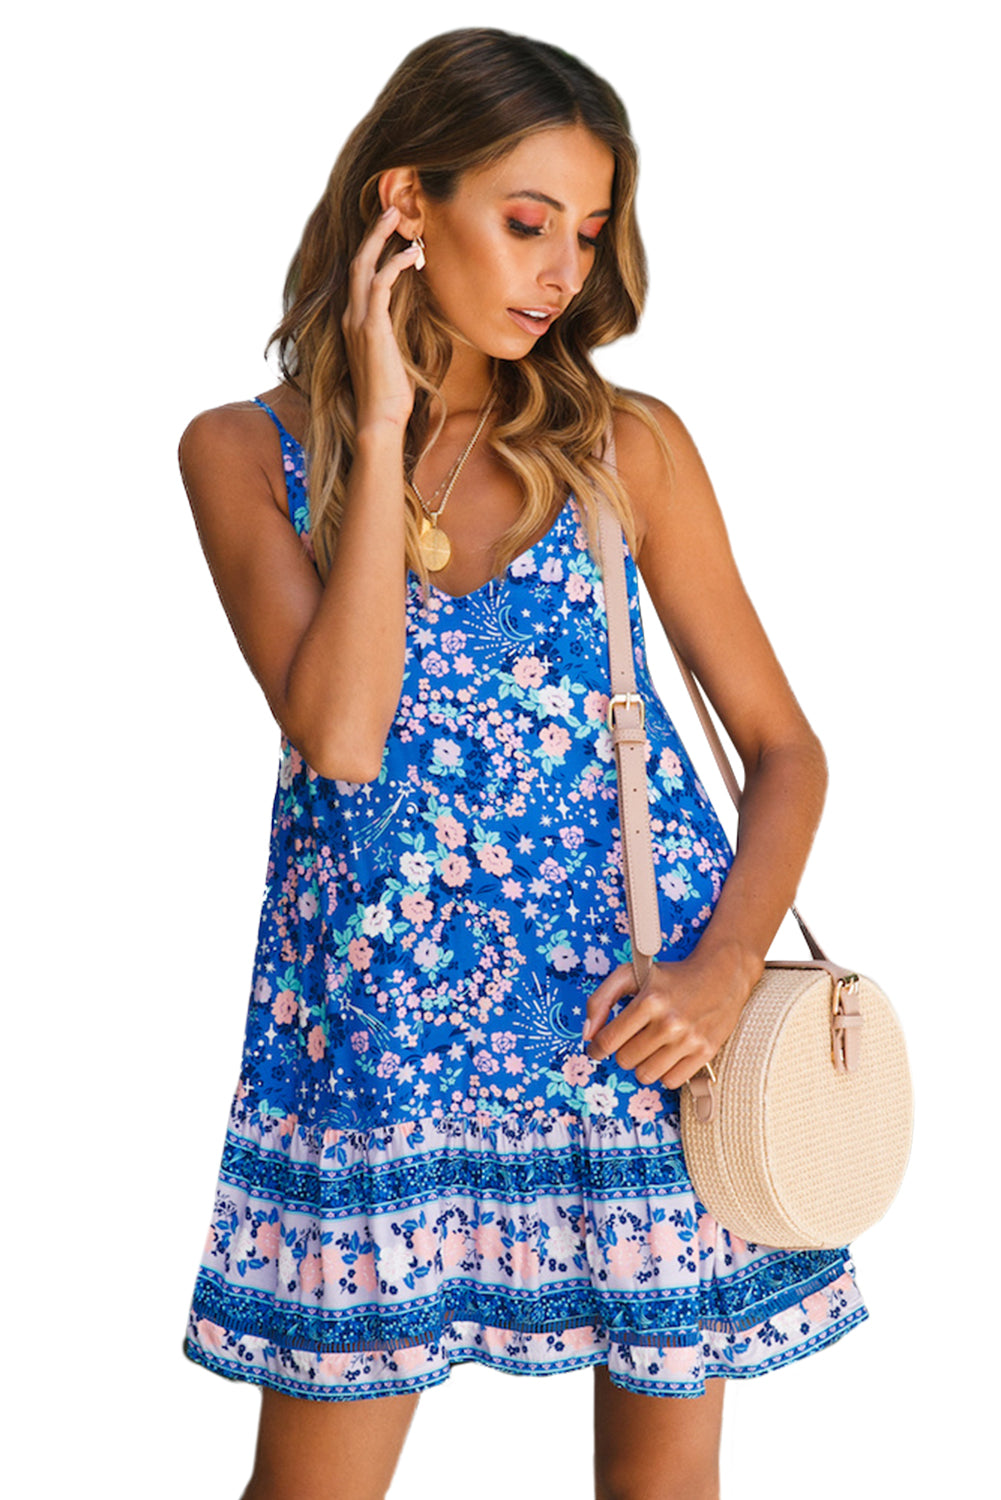 Sky Blue Floral Slip-on Dress